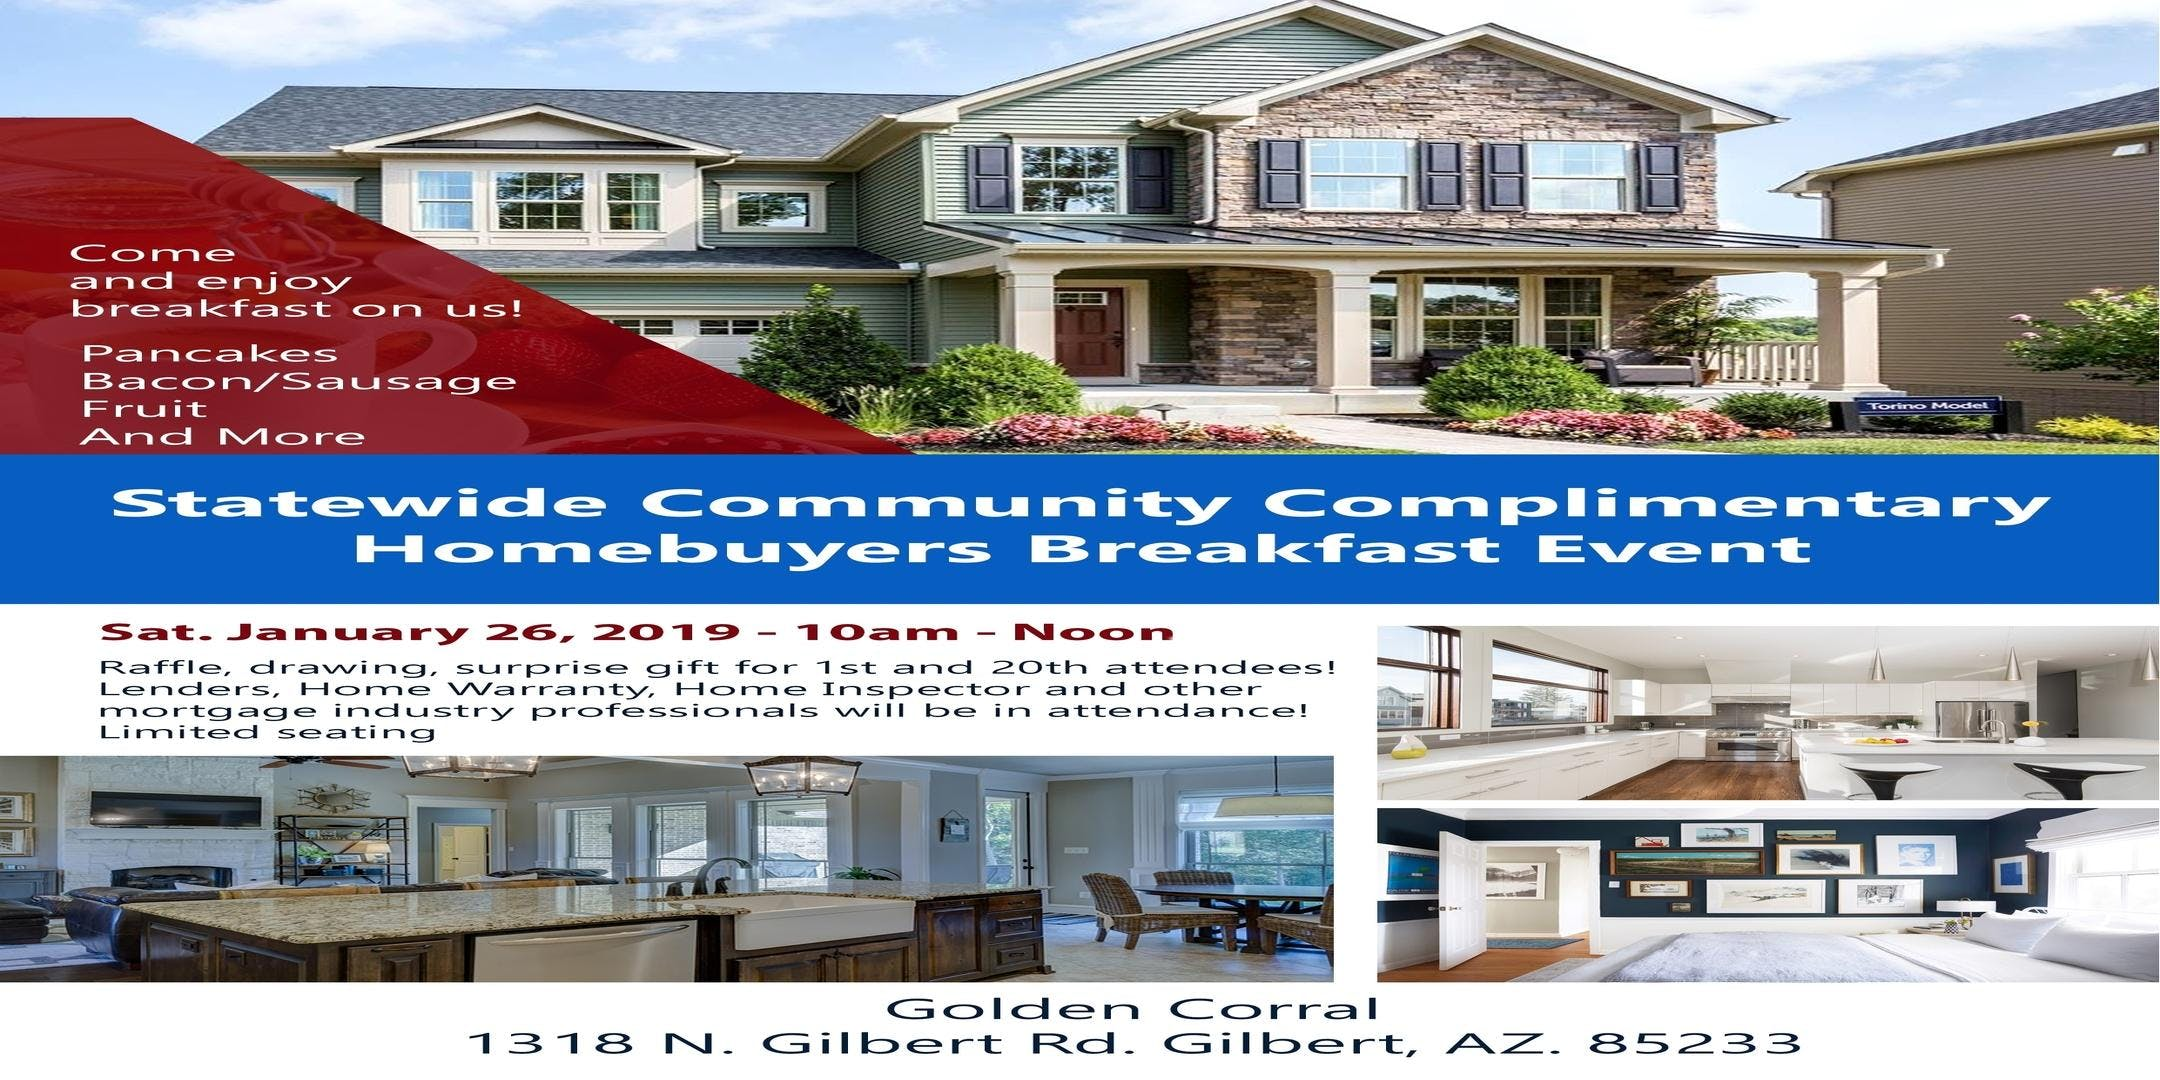 Home Buyer Complimentary Breakfast Event